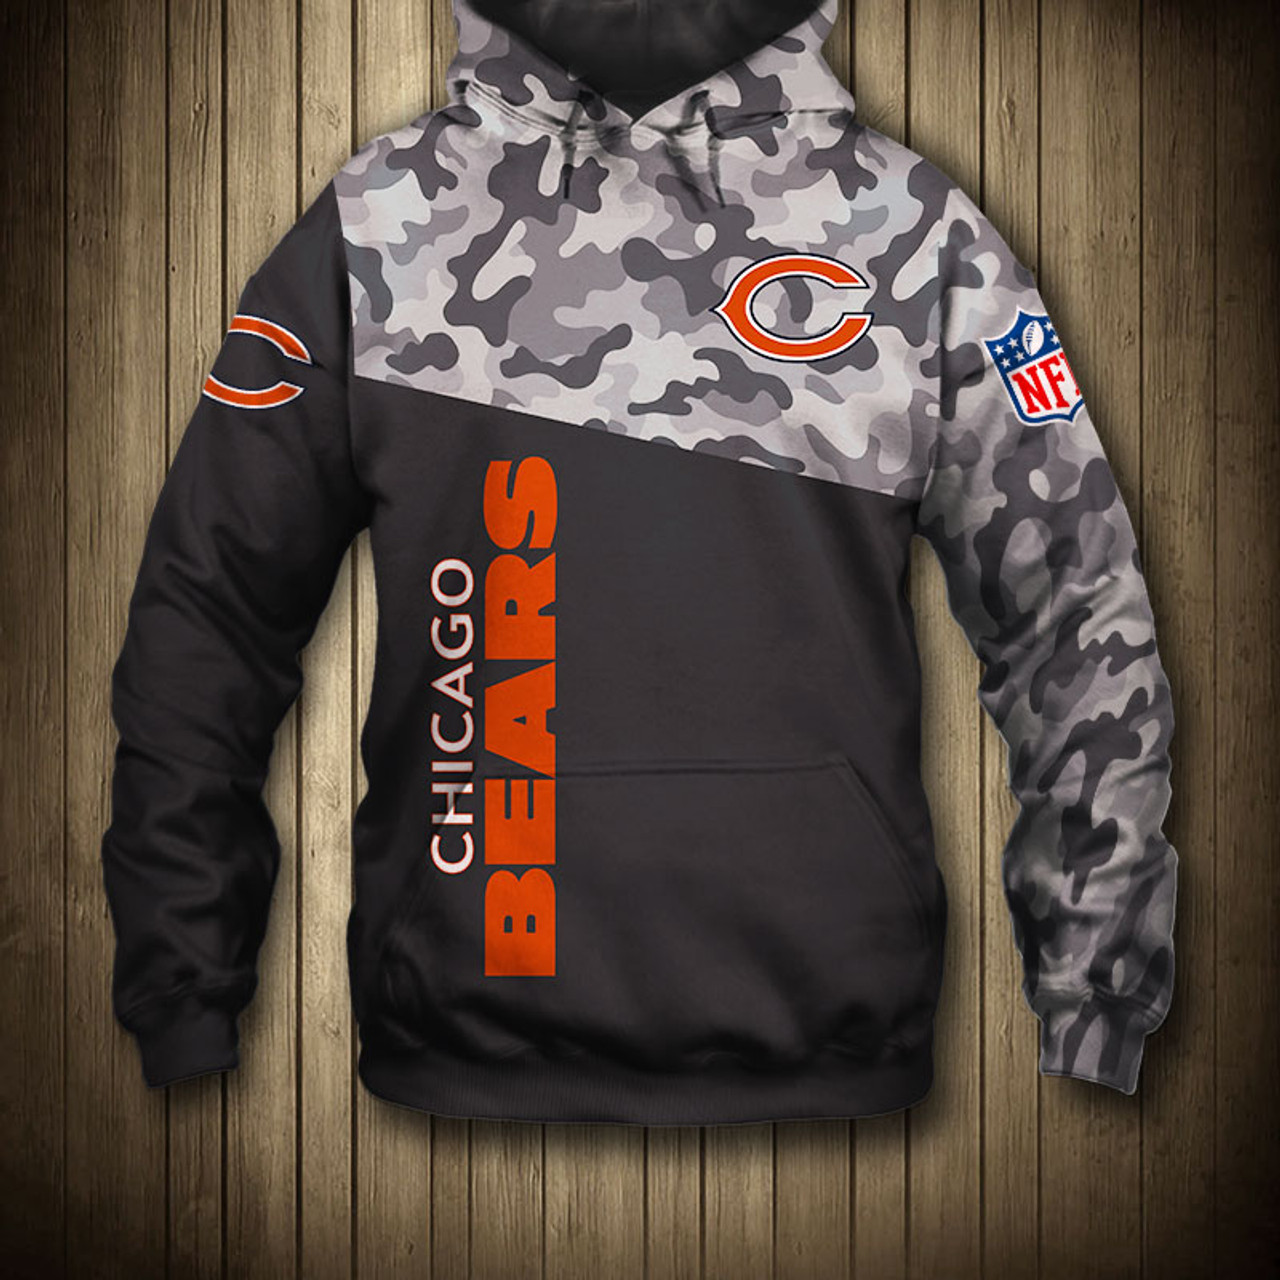 **(OFFICIAL-N.F.L.CHICAGO-BEARS-CAMO.DESIGN-PULLOVER-HOODIES/3D-CUSTOM-BEARS-LOGOS & OFFICIAL-BEARS-TEAM-COLORS/NICE-3D-DETAILED-GRAPHIC-PRINTED-DOUBLE-SIDED/ALL-OVER-ENTIRE-HOODIE-PRINTED-DESIGN/WARM-PREMIUM-N.F.L.BEARS-PULLOVER-HOODIES)**